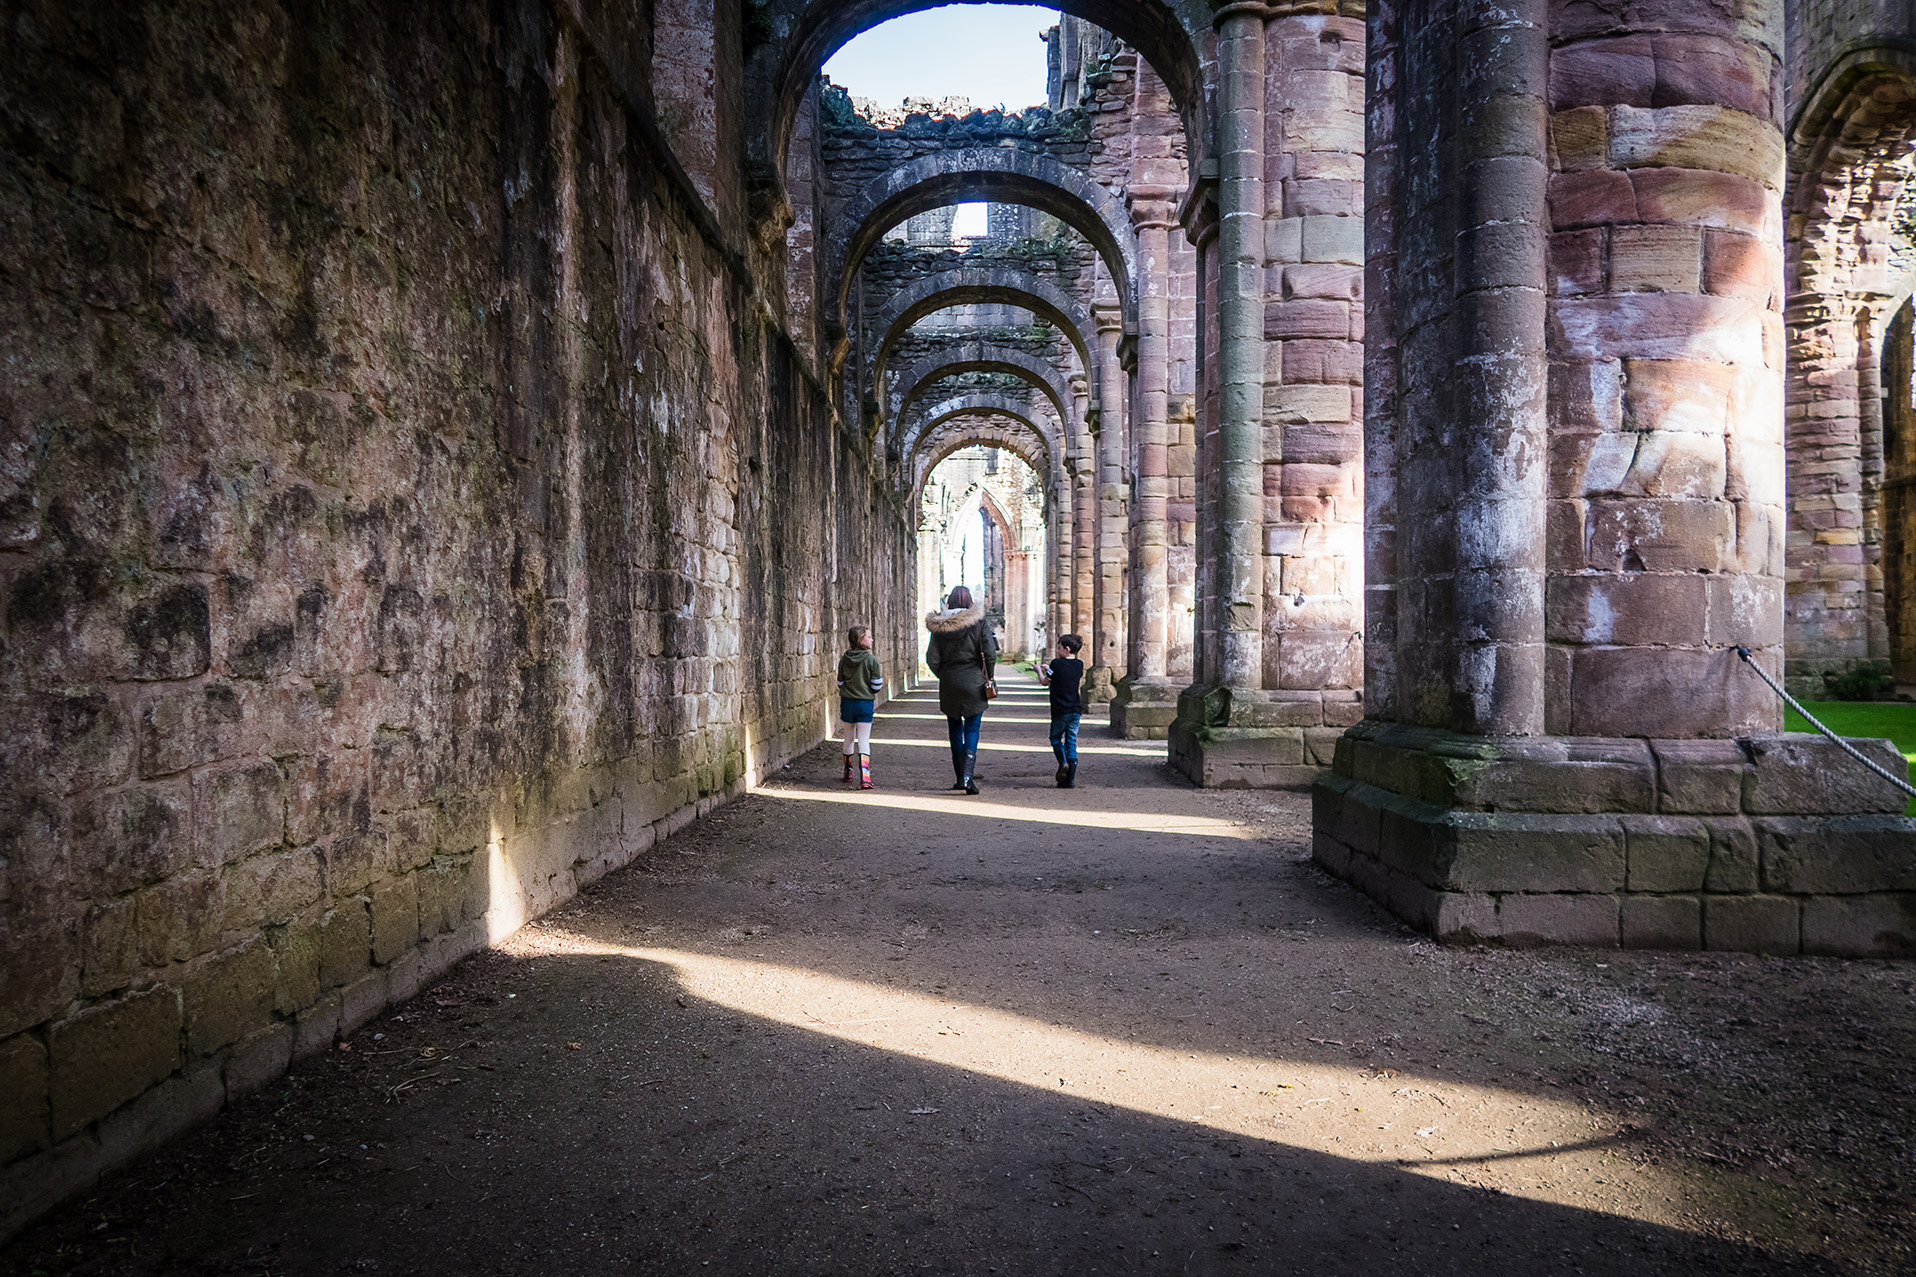 arches at Fountains Abbey, Yorkshire